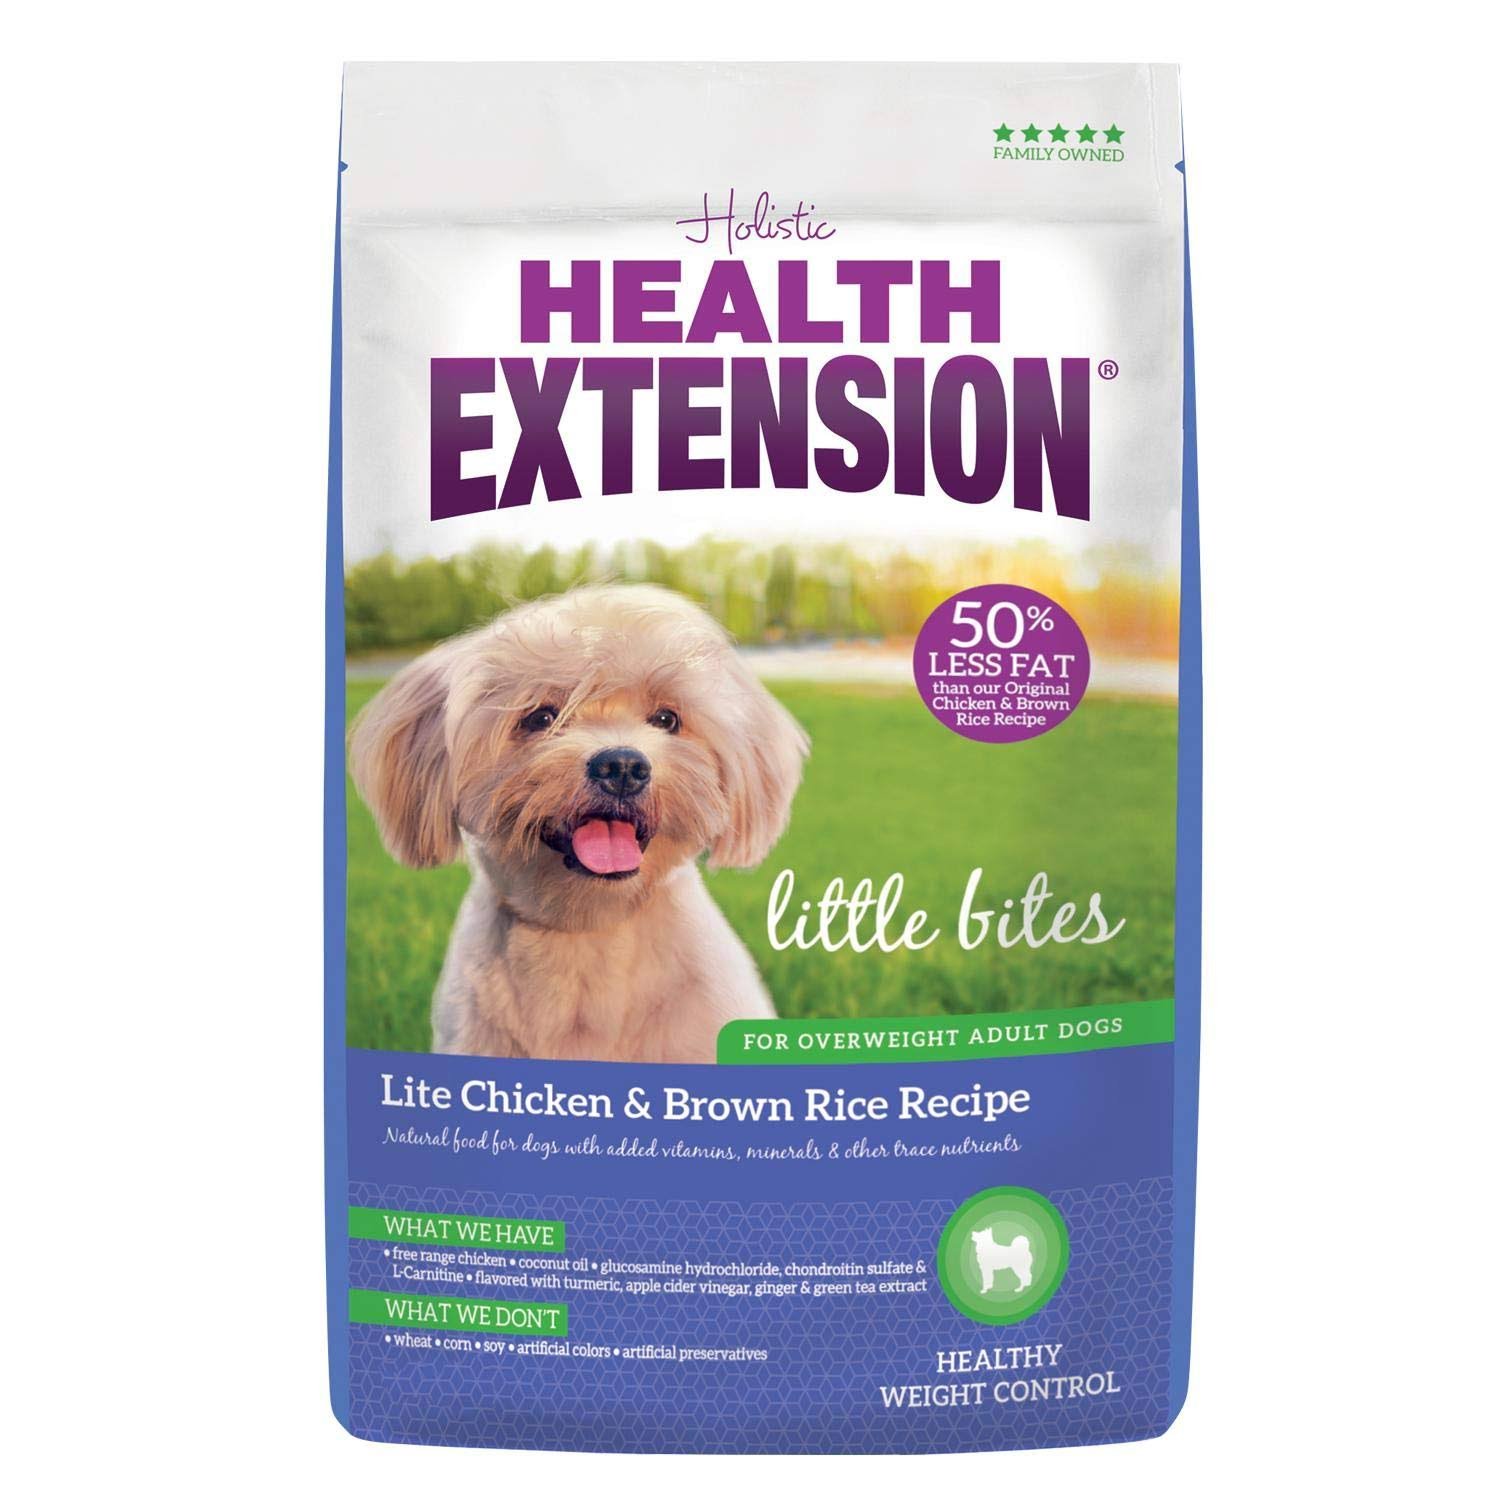 Holistic Health Extension Lite Little Bites